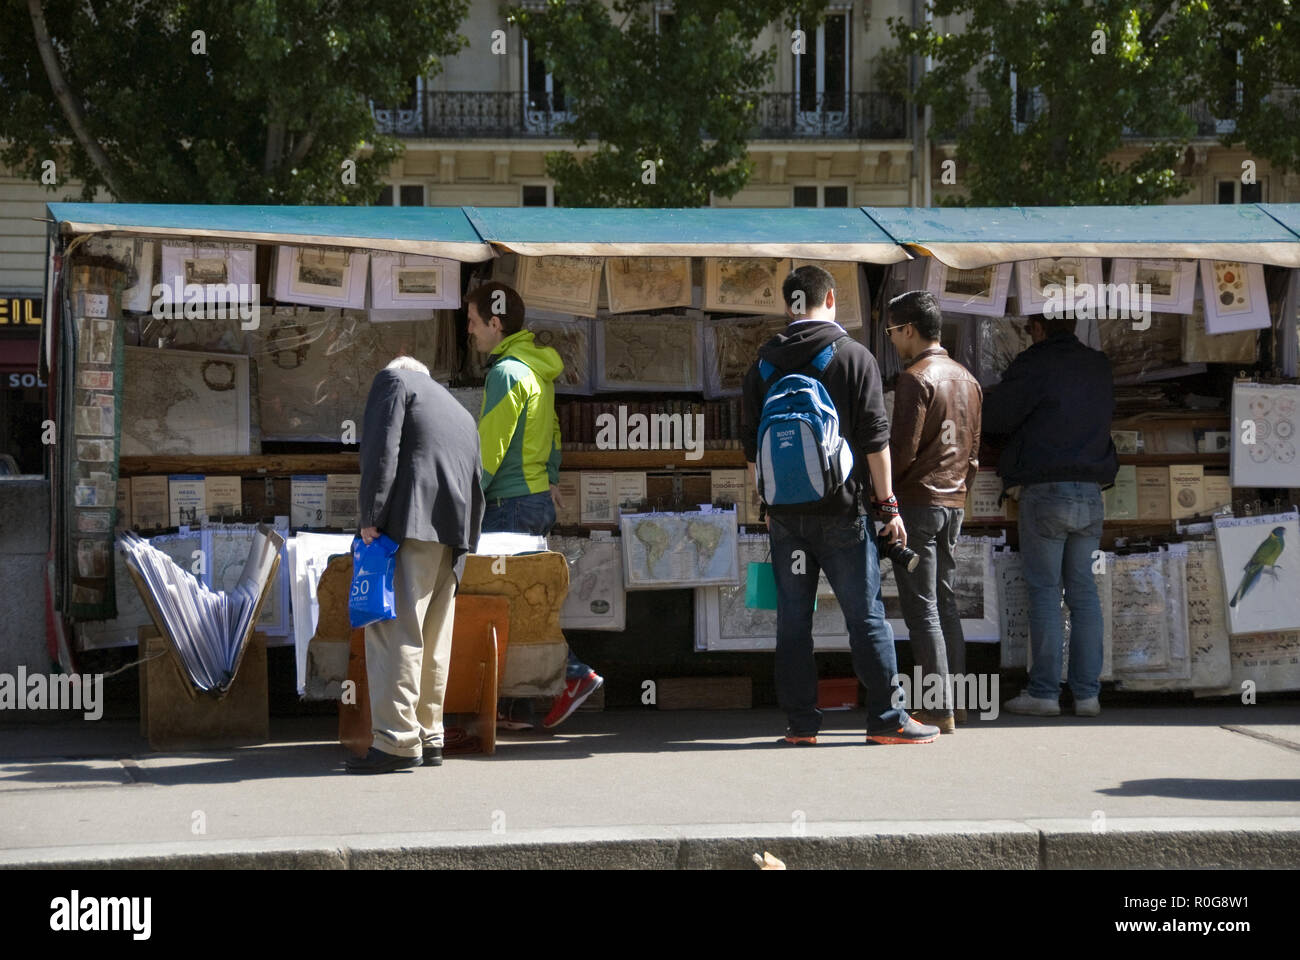 Shoppers peruse antique books, prints and maps at a book stall on the Seine river embankment, Paris, France. - Stock Image